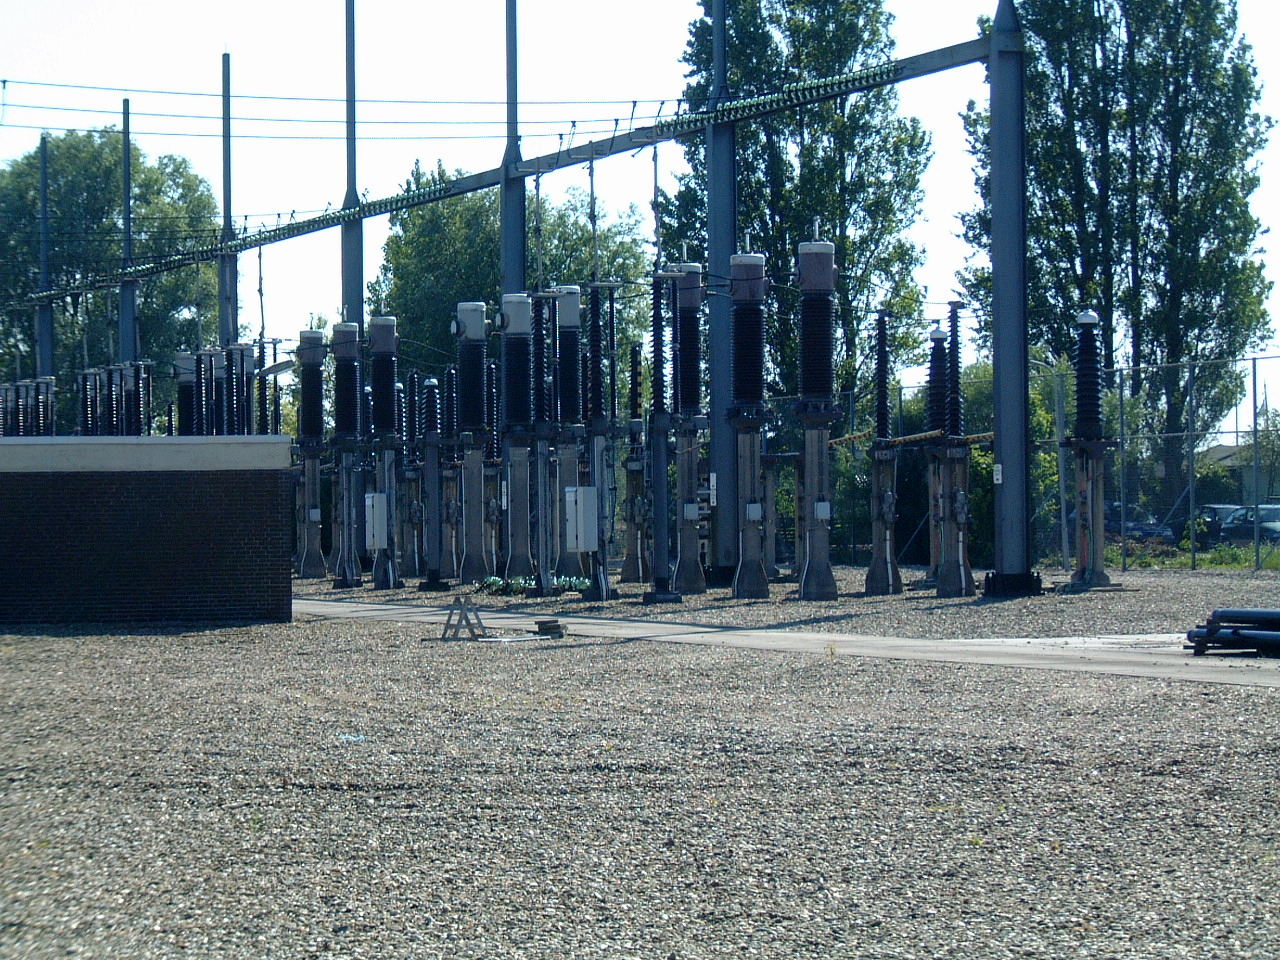 Sub Stations can Cause External Transient Voltage in Excess of Tens of Thousands of Volts. Use High Quality, High Performance Surge Protectors to Prevent Damage. Get the Right Gear!